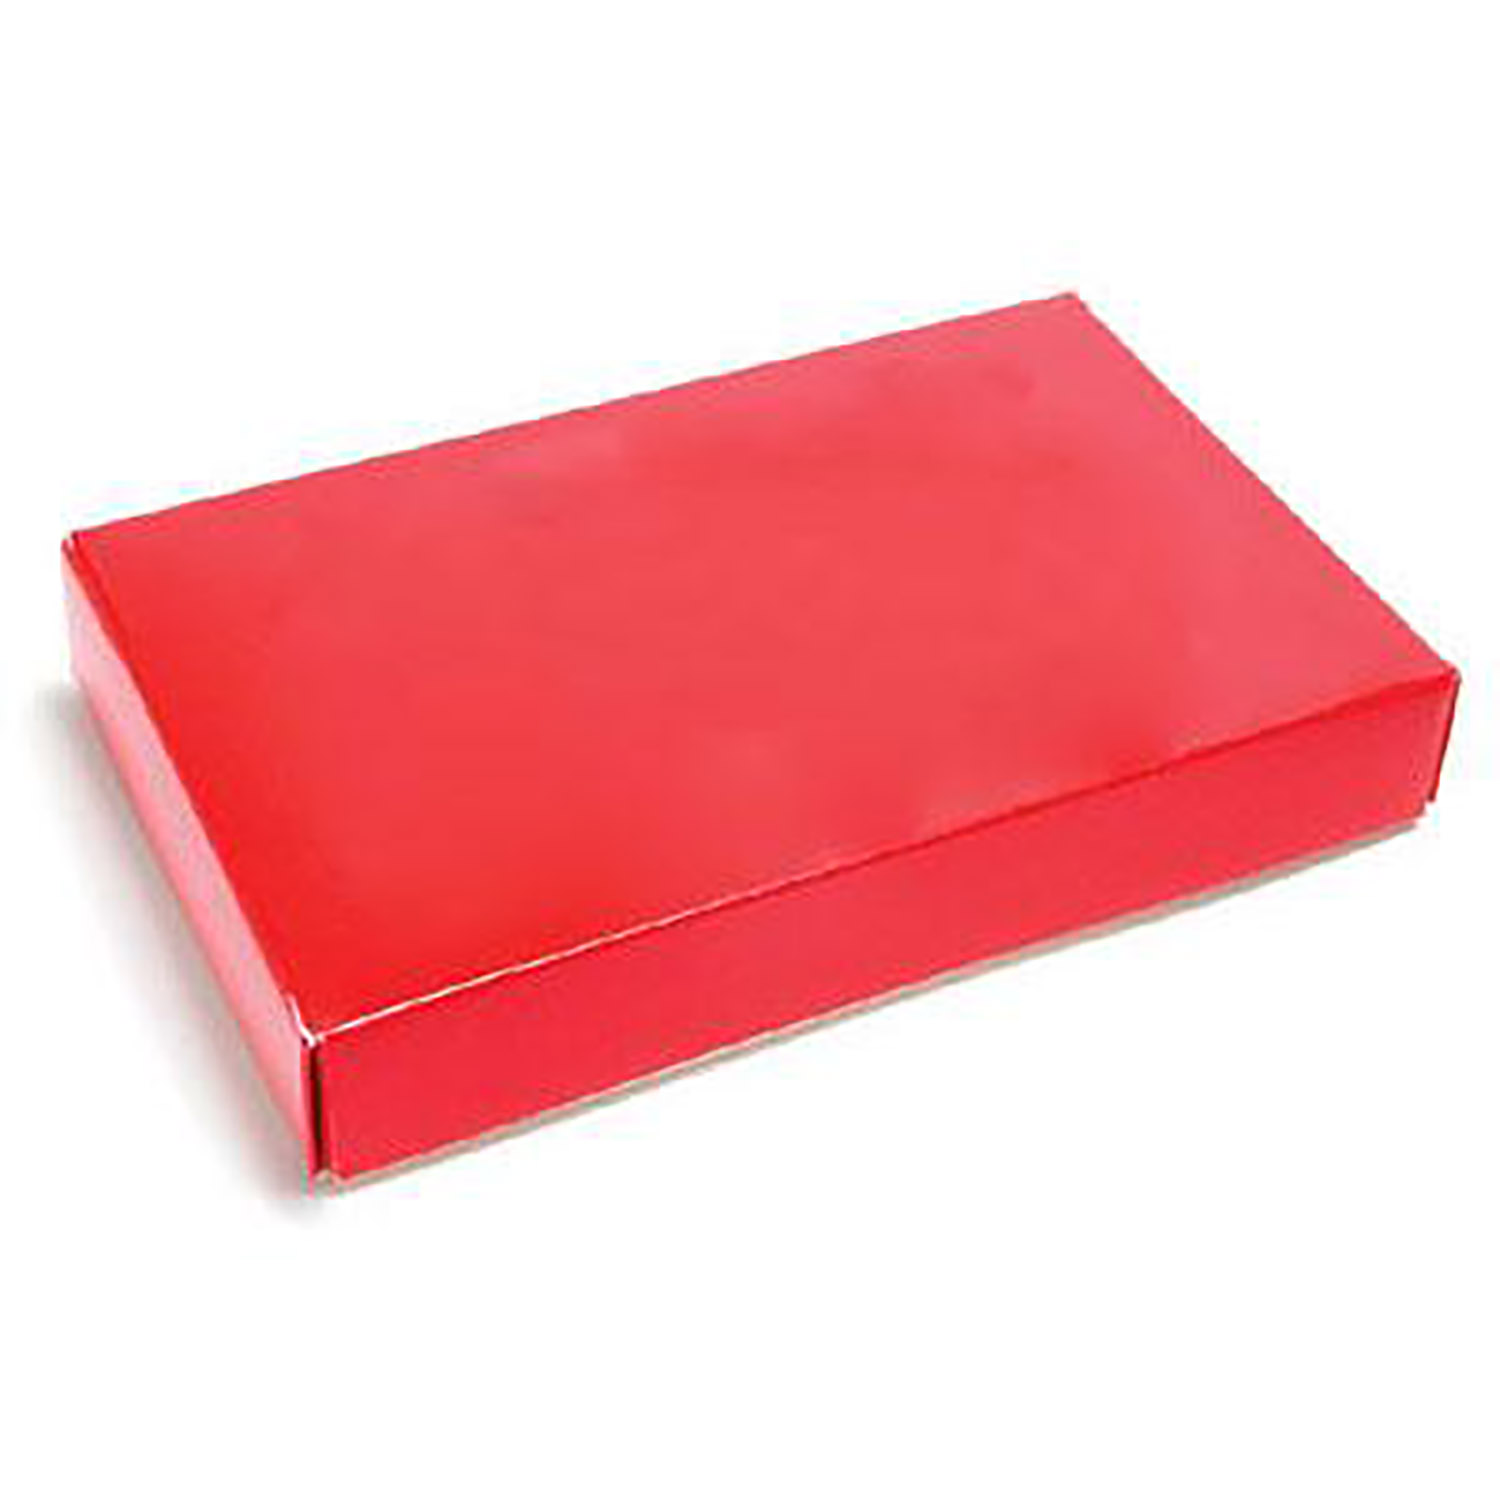 1 lb. Red Candy Box